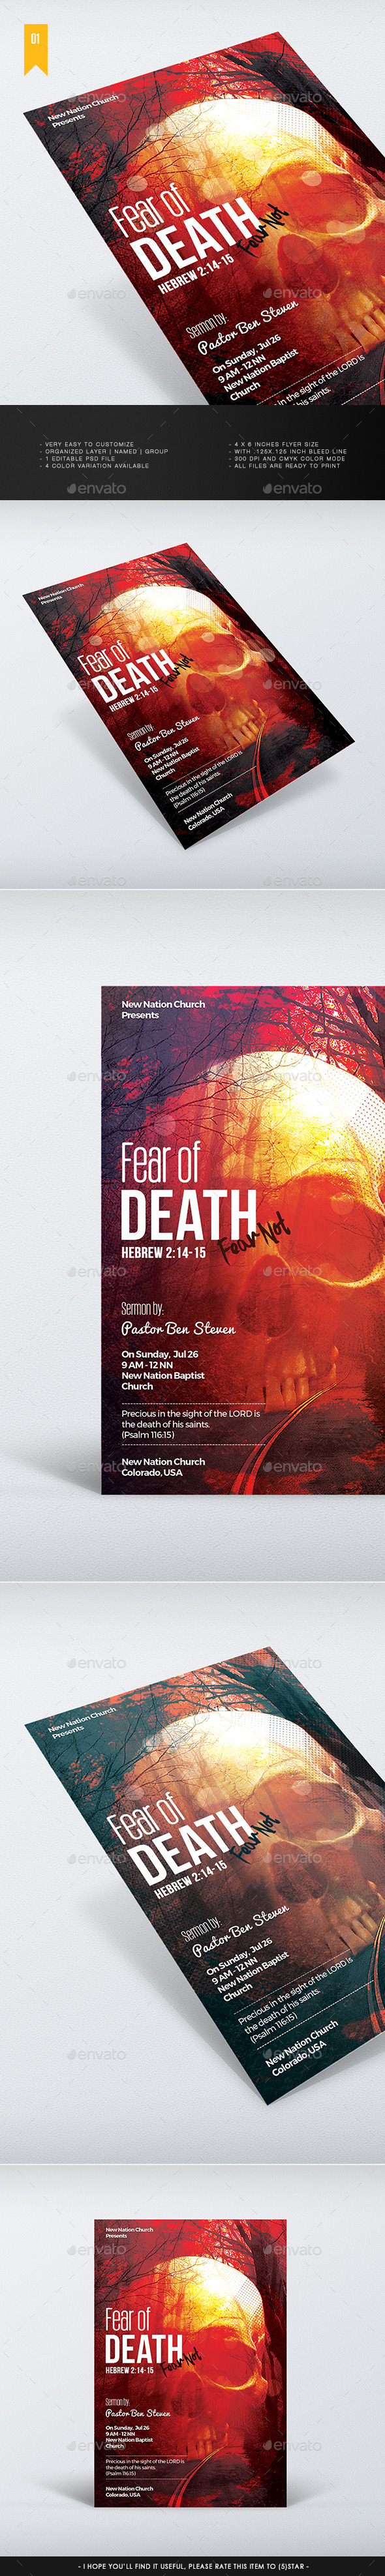 Fear Of Death - Church Flyer - Church Flyers